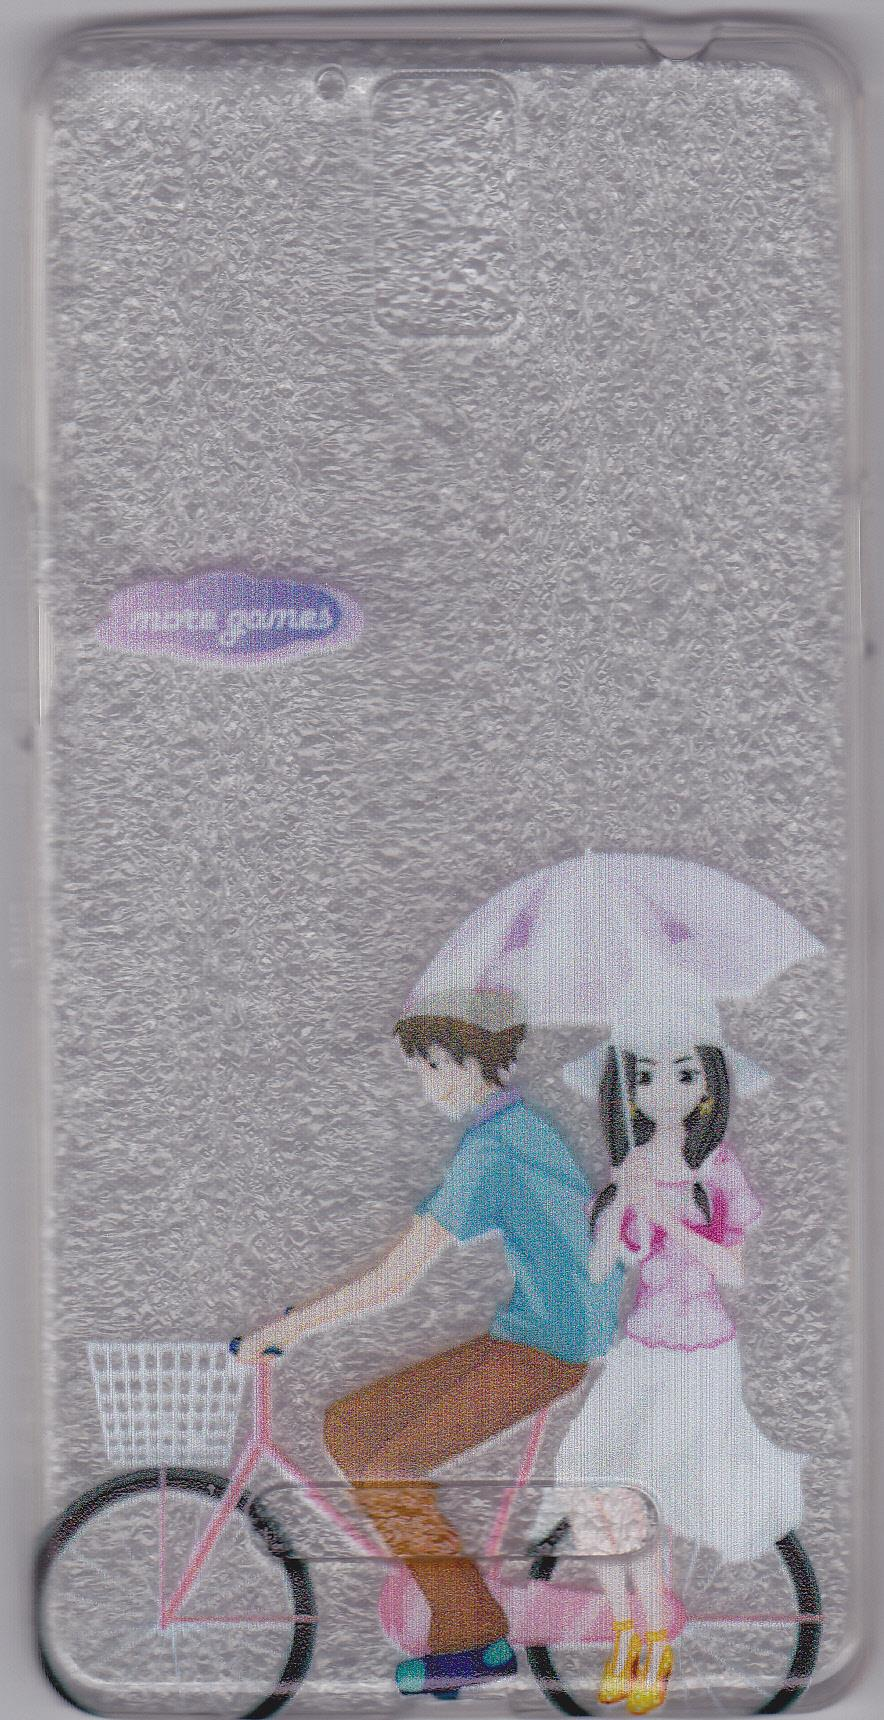 OPPO R3 / R7007 / R3S PICTURE SOFT HANDPHONE CASE-COUPLE 1